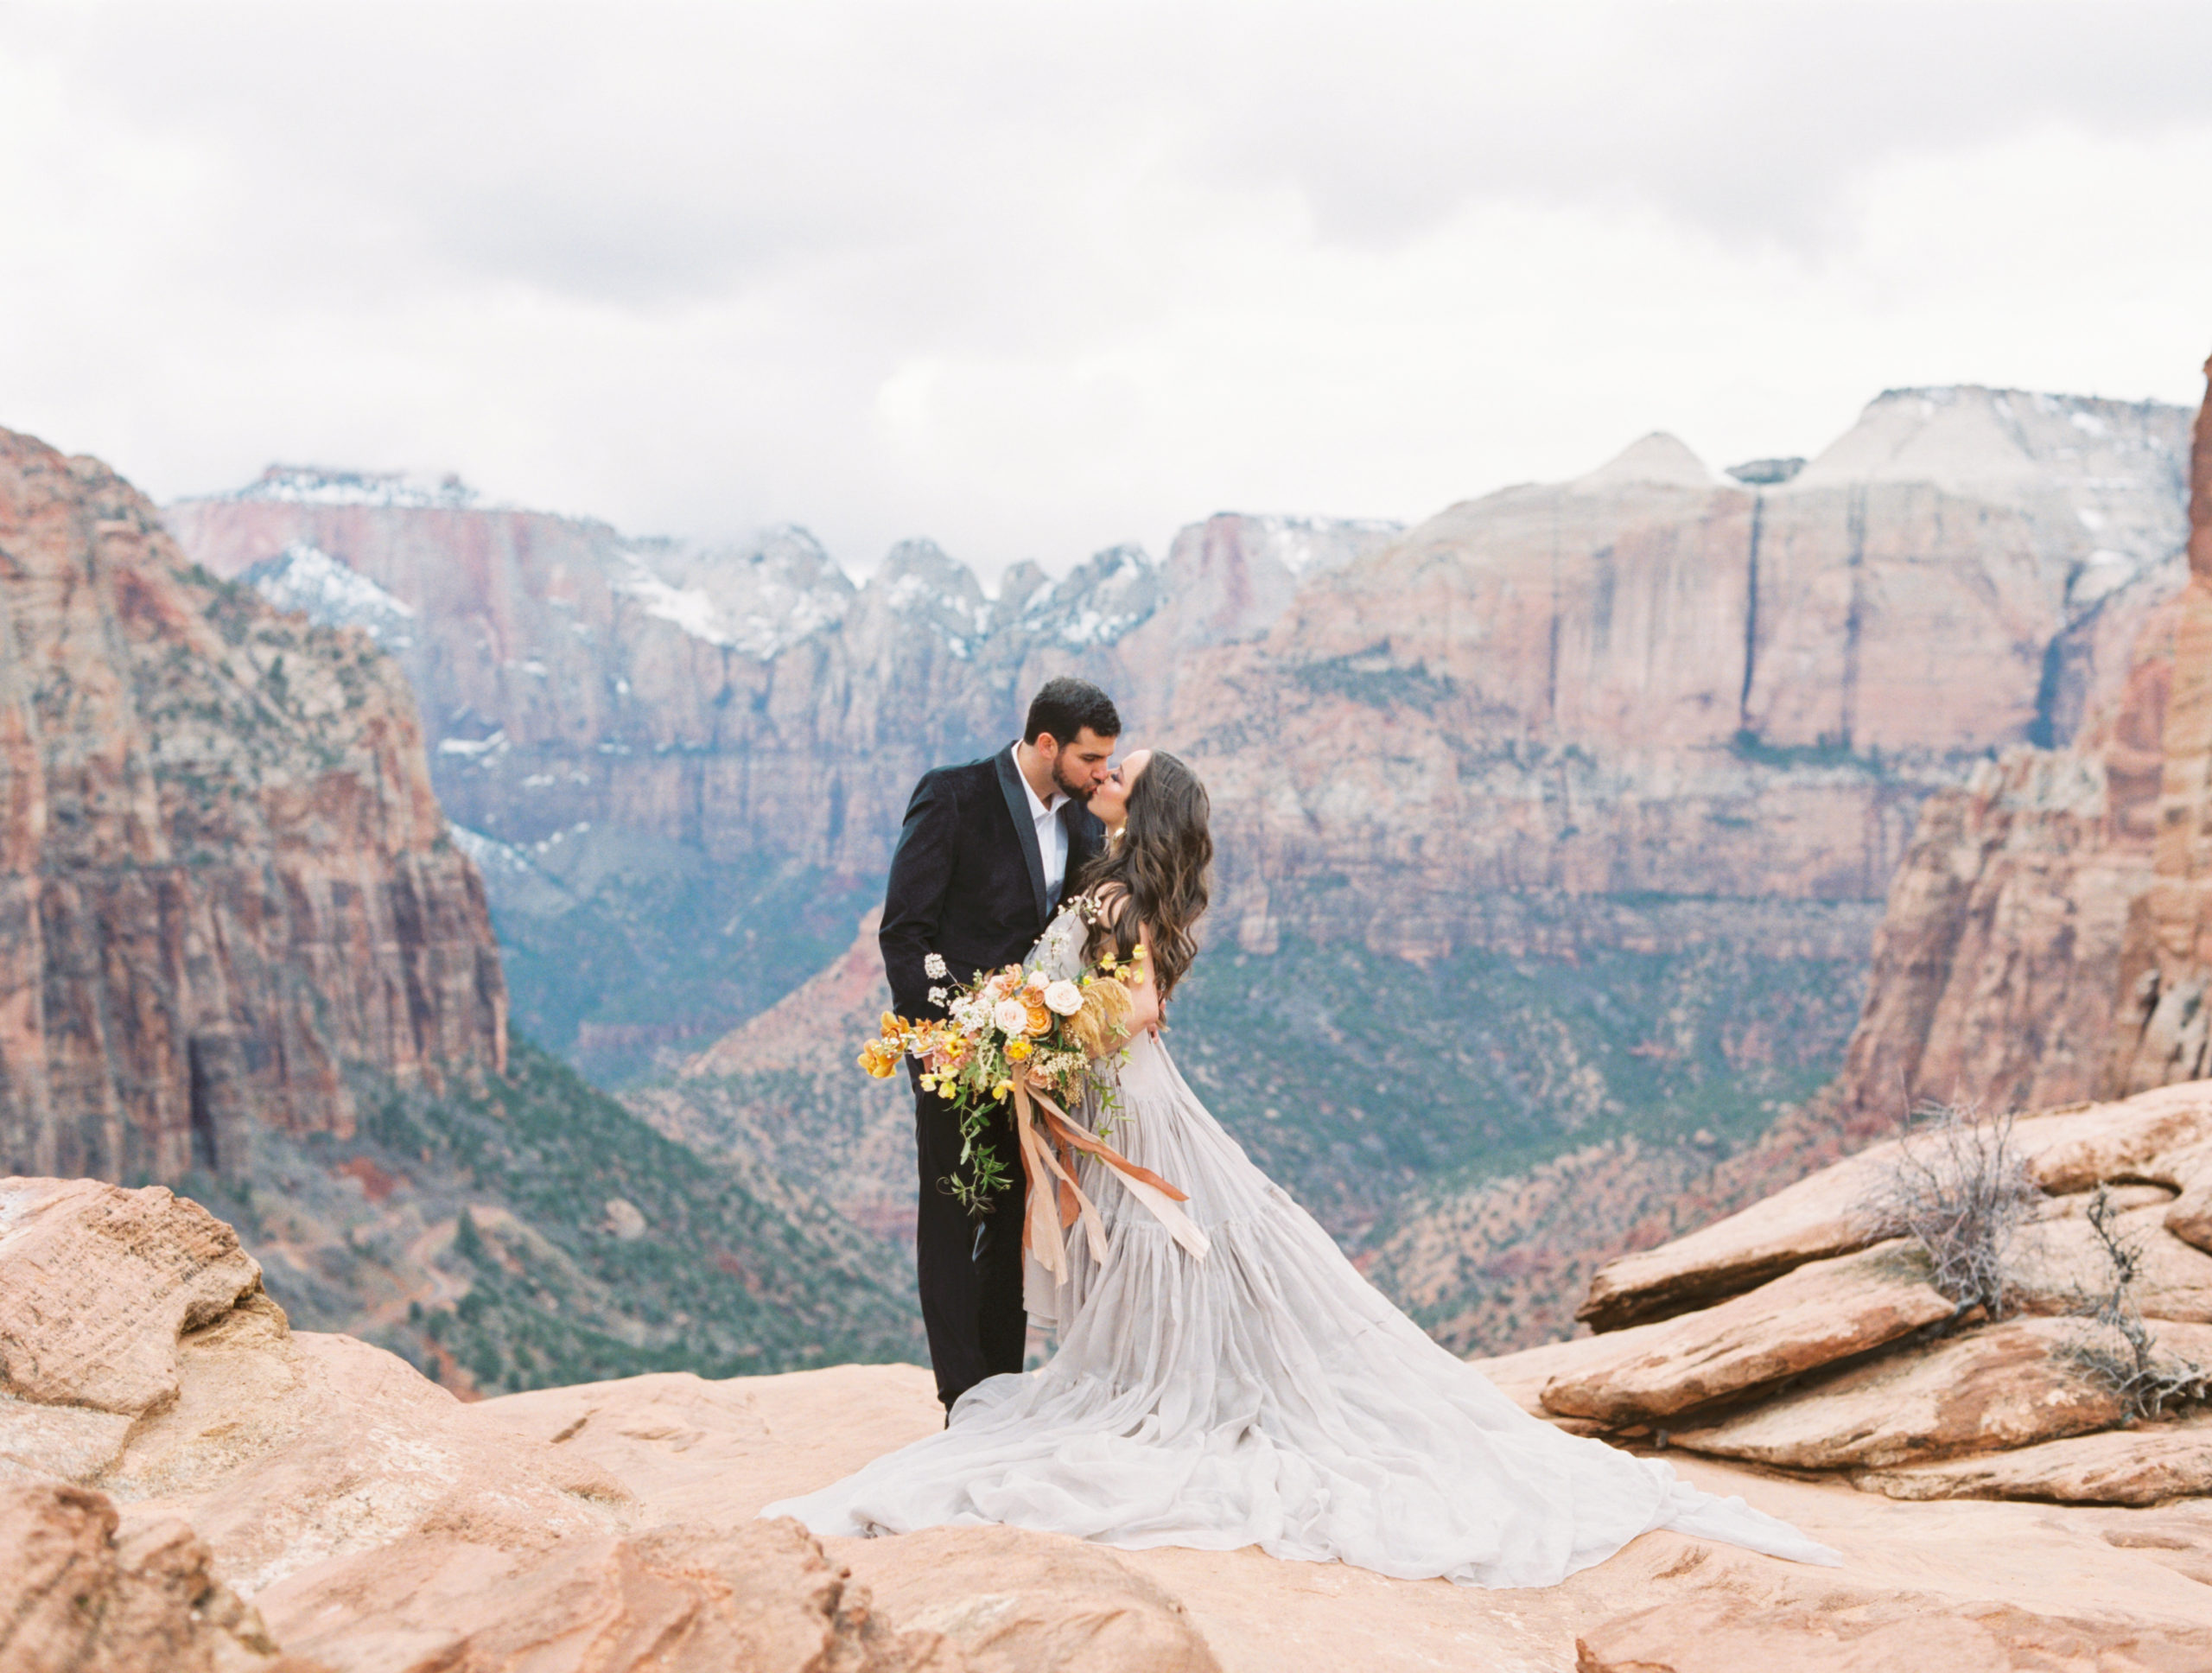 Zion wedding by Shannon Skloss